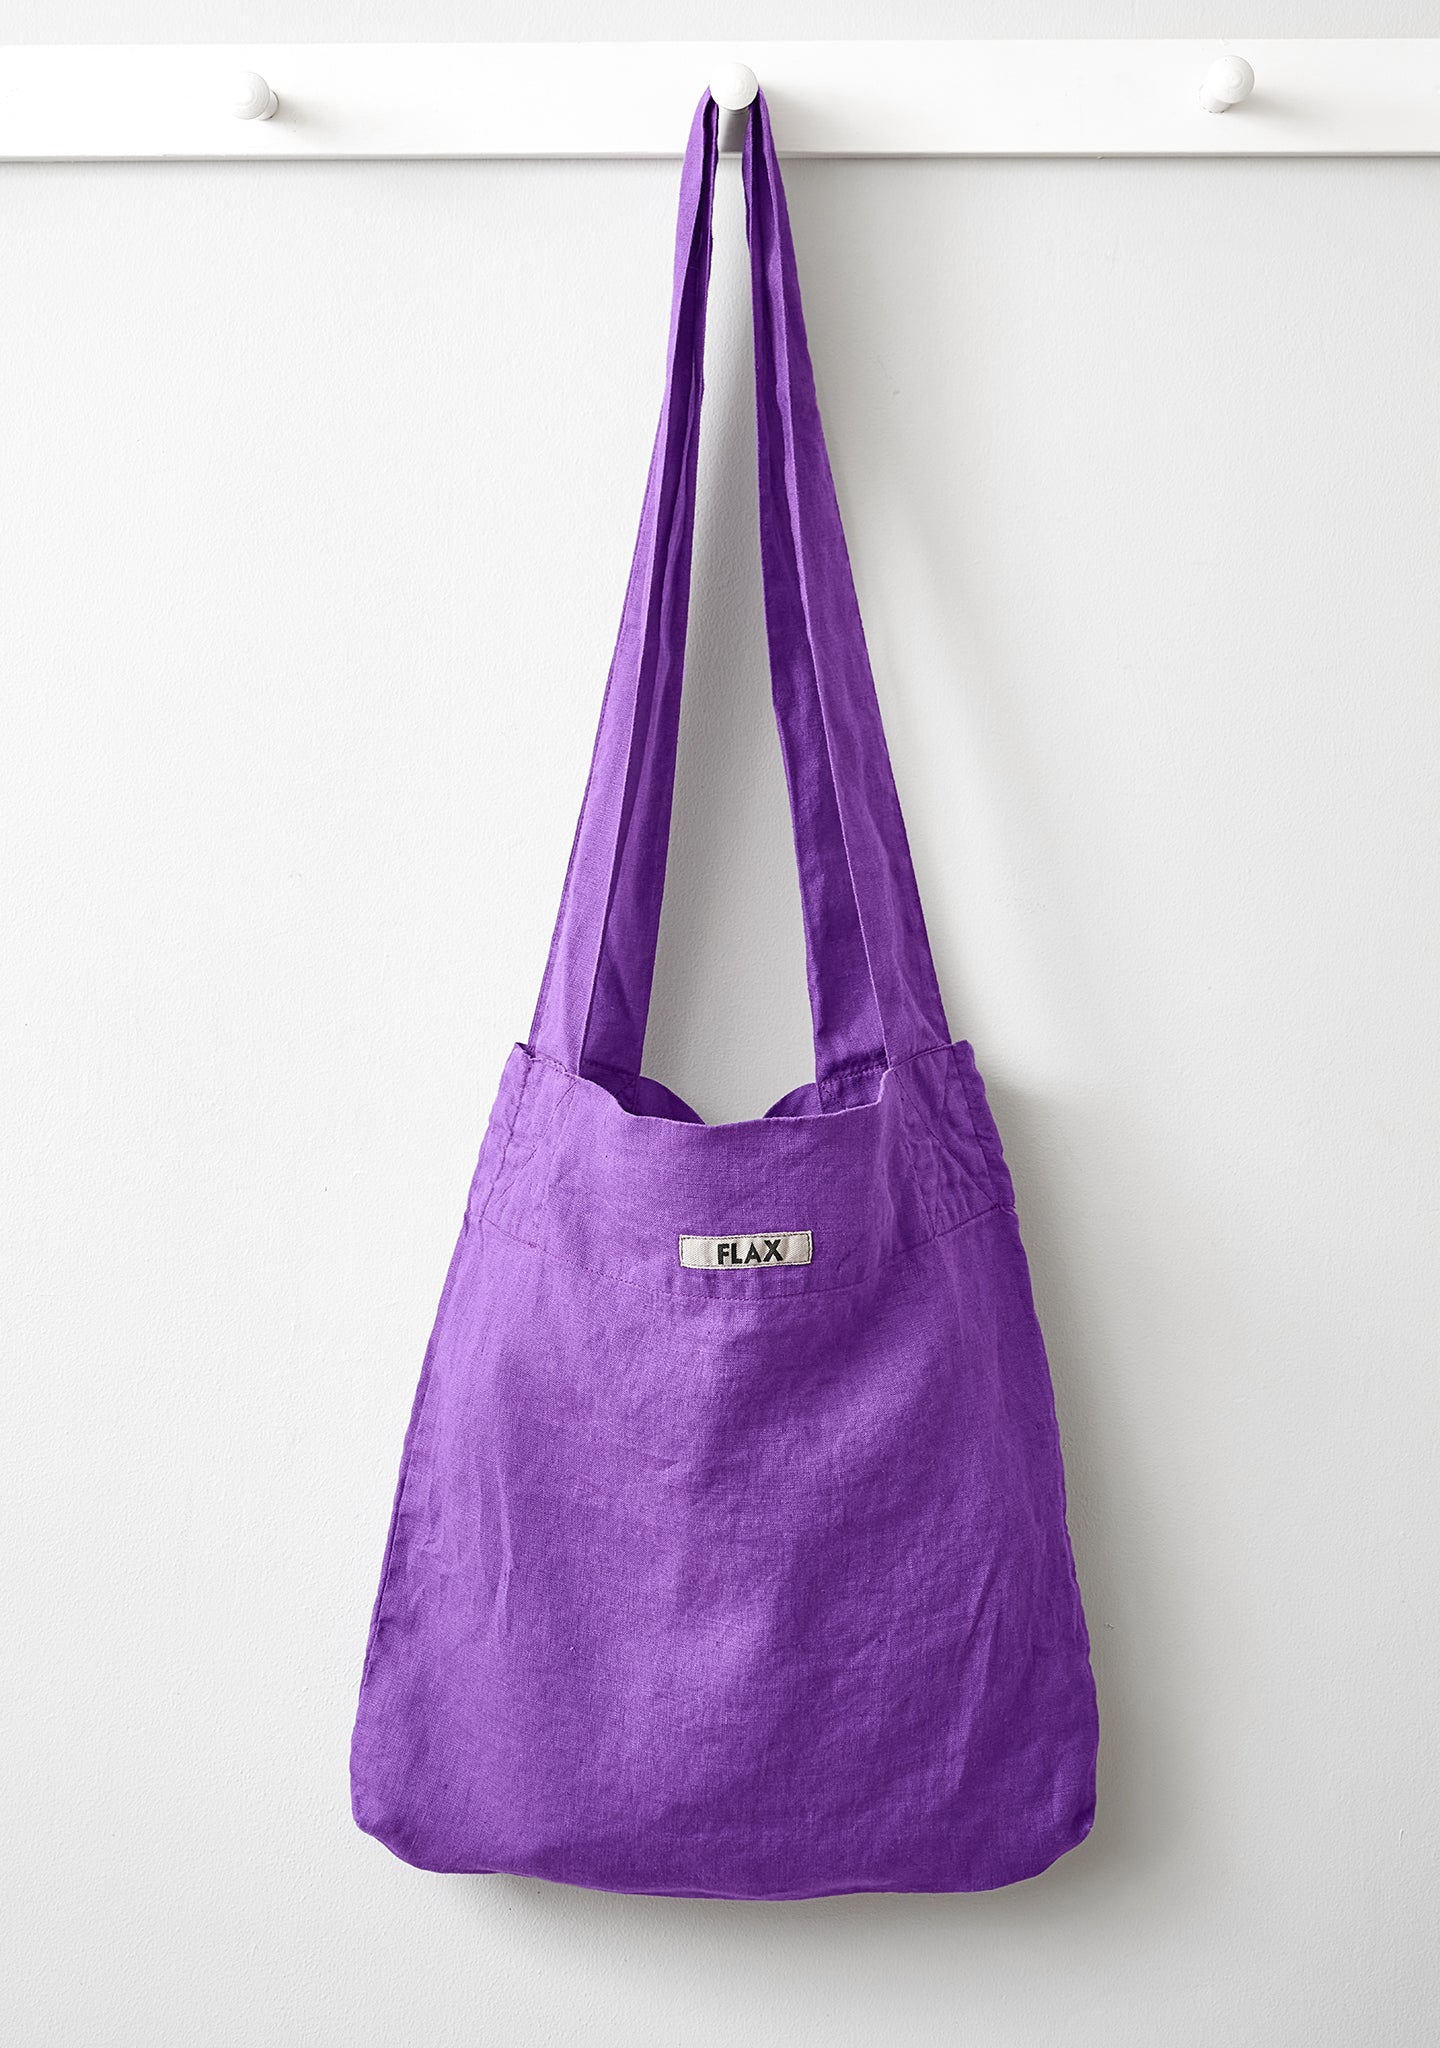 the bag linen shopping bag purple